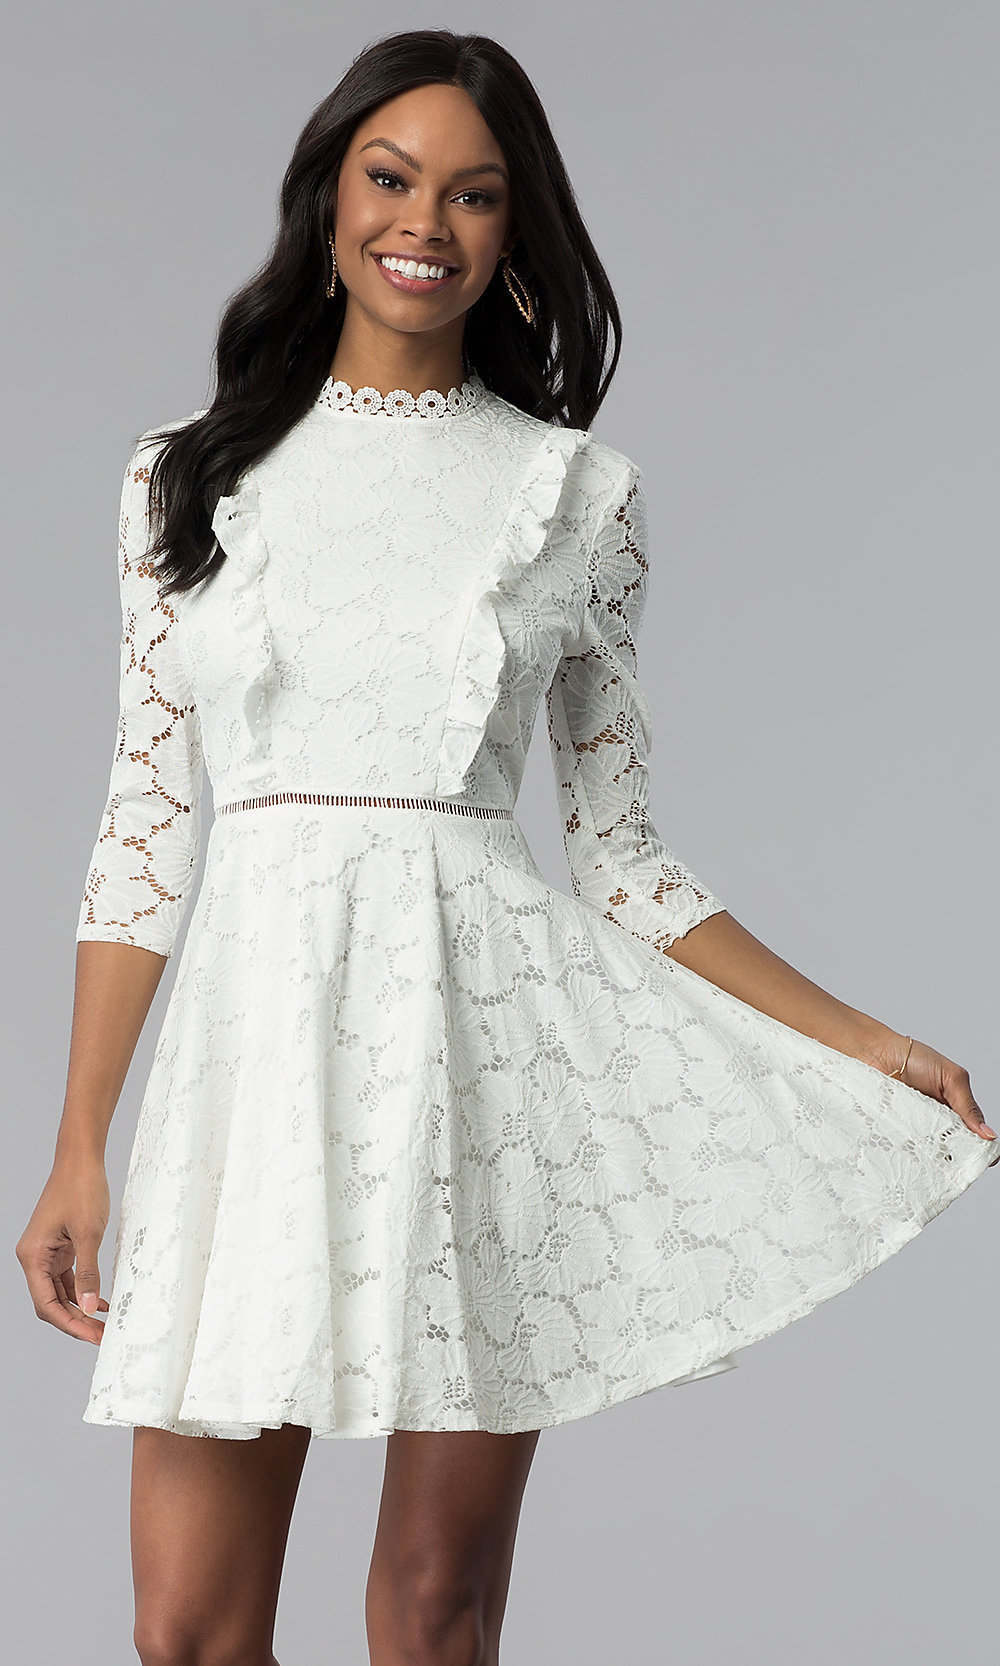 84d8f74d2f8 Lace White High-Neck Graduation Dress - PromGirl